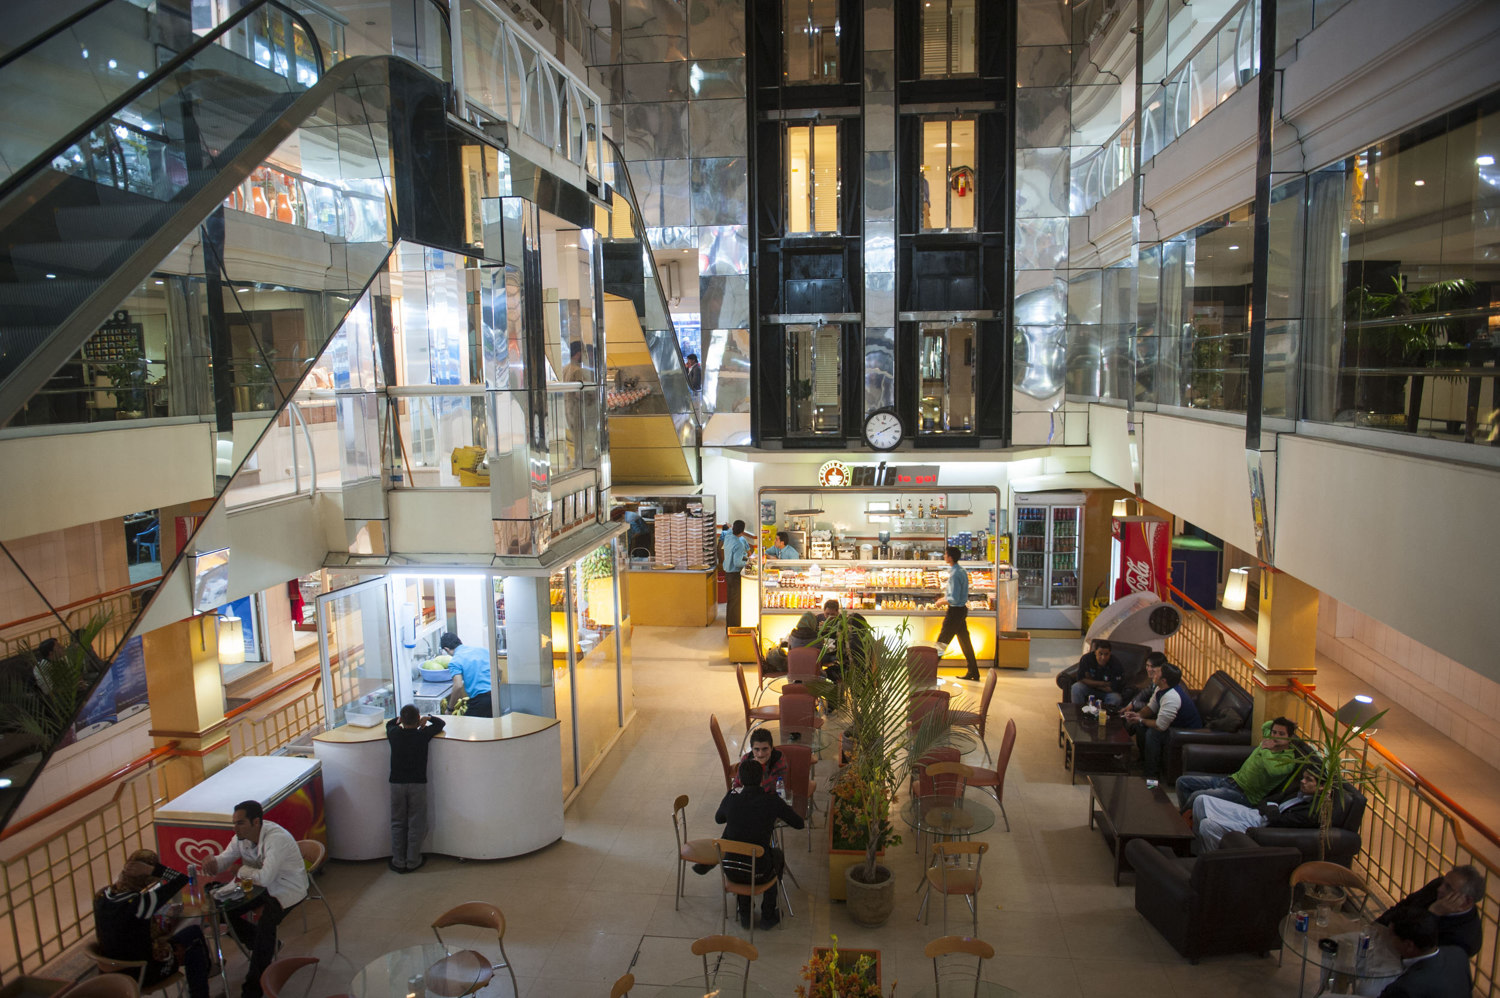 Kabul City Center, Afghanistan's first modern shopping center is a nine stories tall in the posh section of Shar-e-now, Kabul Afghanistan. Security is heavy and shoppers are profiled, and must be well-heeled to be allowed entrance.